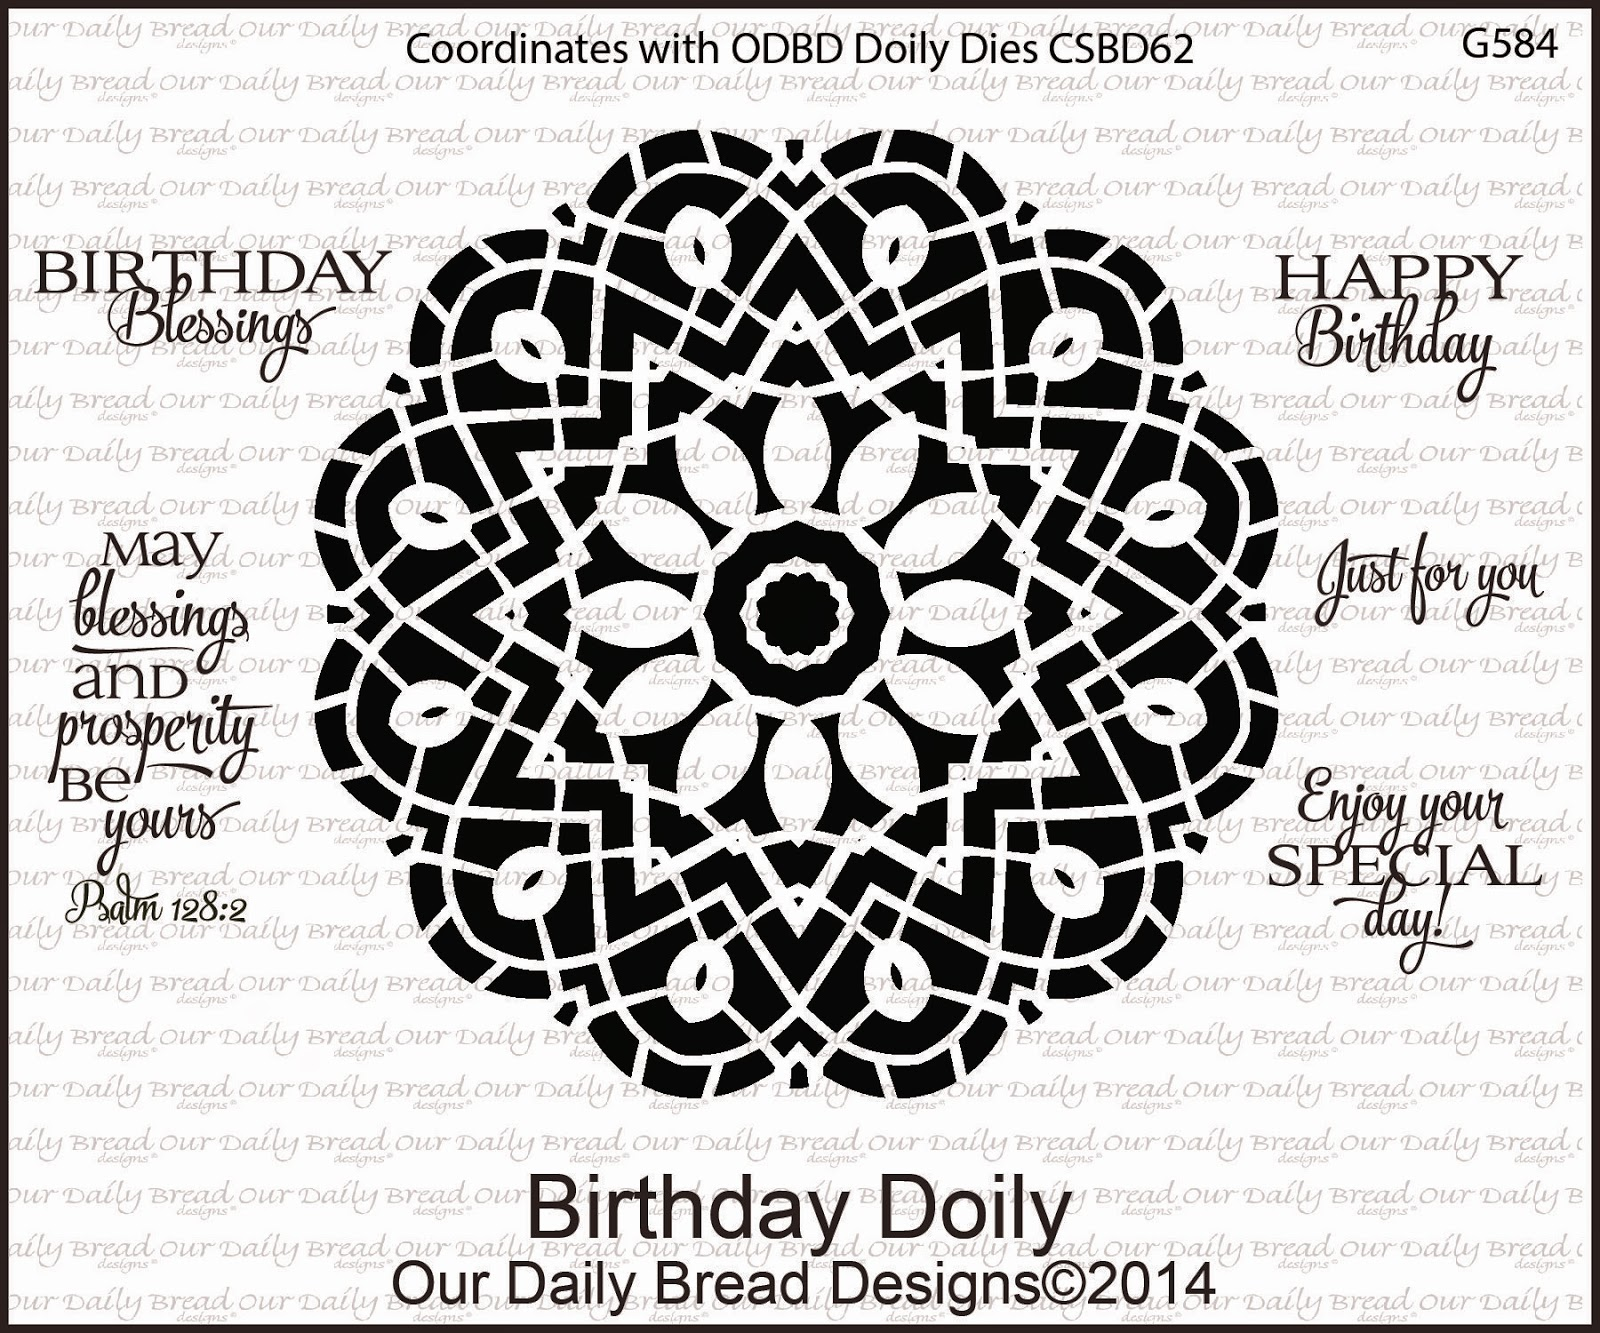 https://www.ourdailybreaddesigns.com/index.php/g584-birthday-doily.html